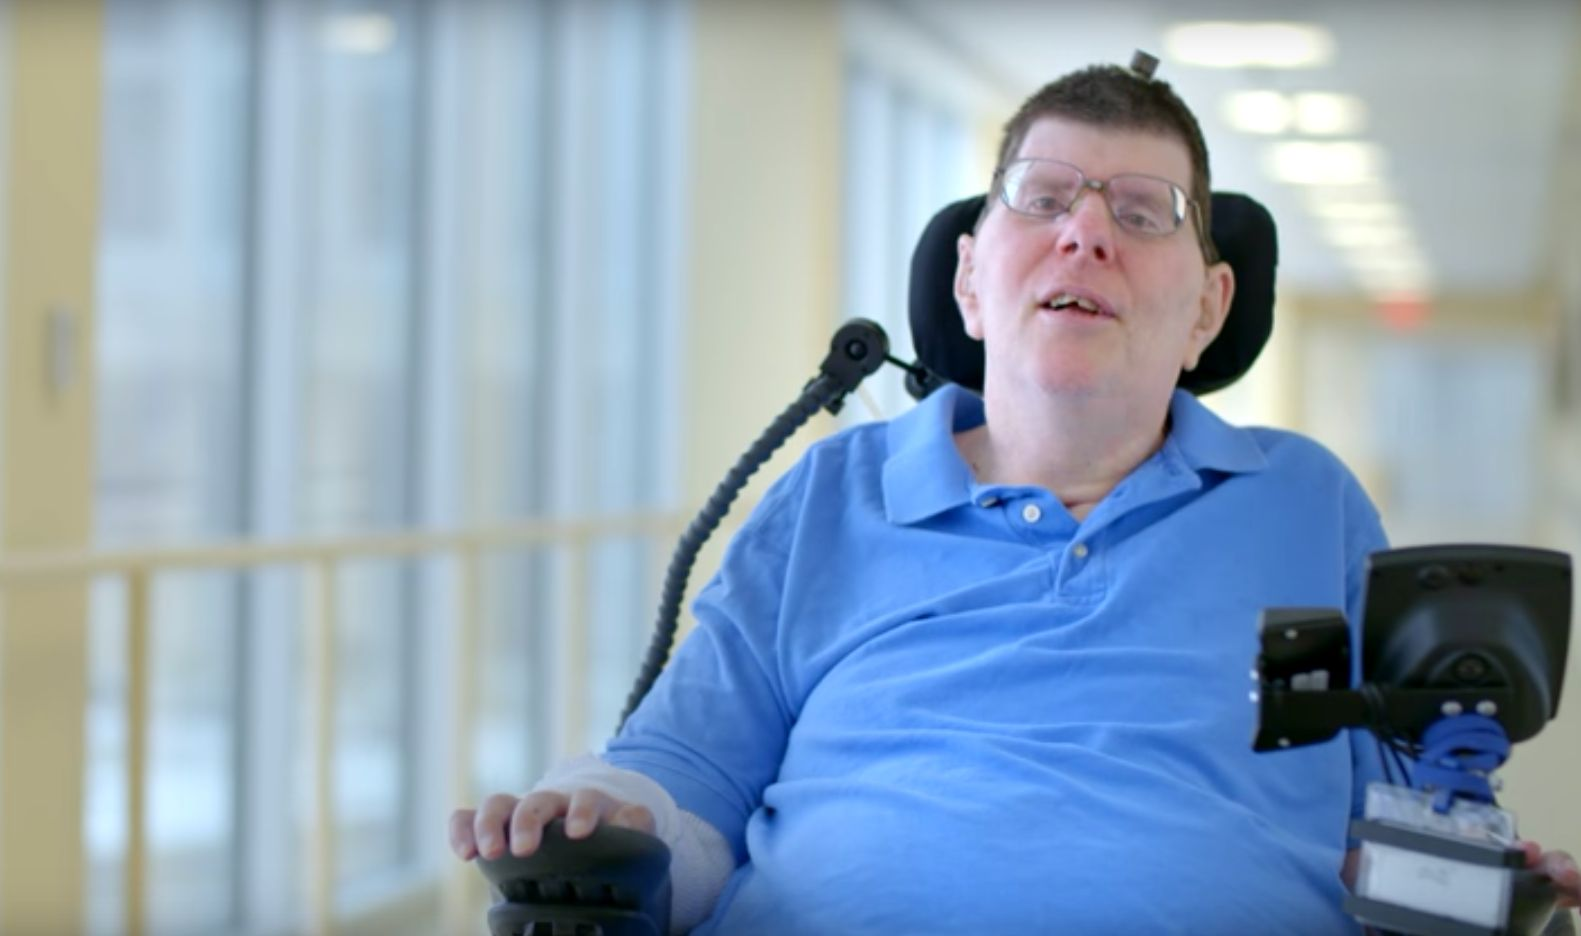 A Paralysed Man Can Now Move His Arms Using Thought-Controlled